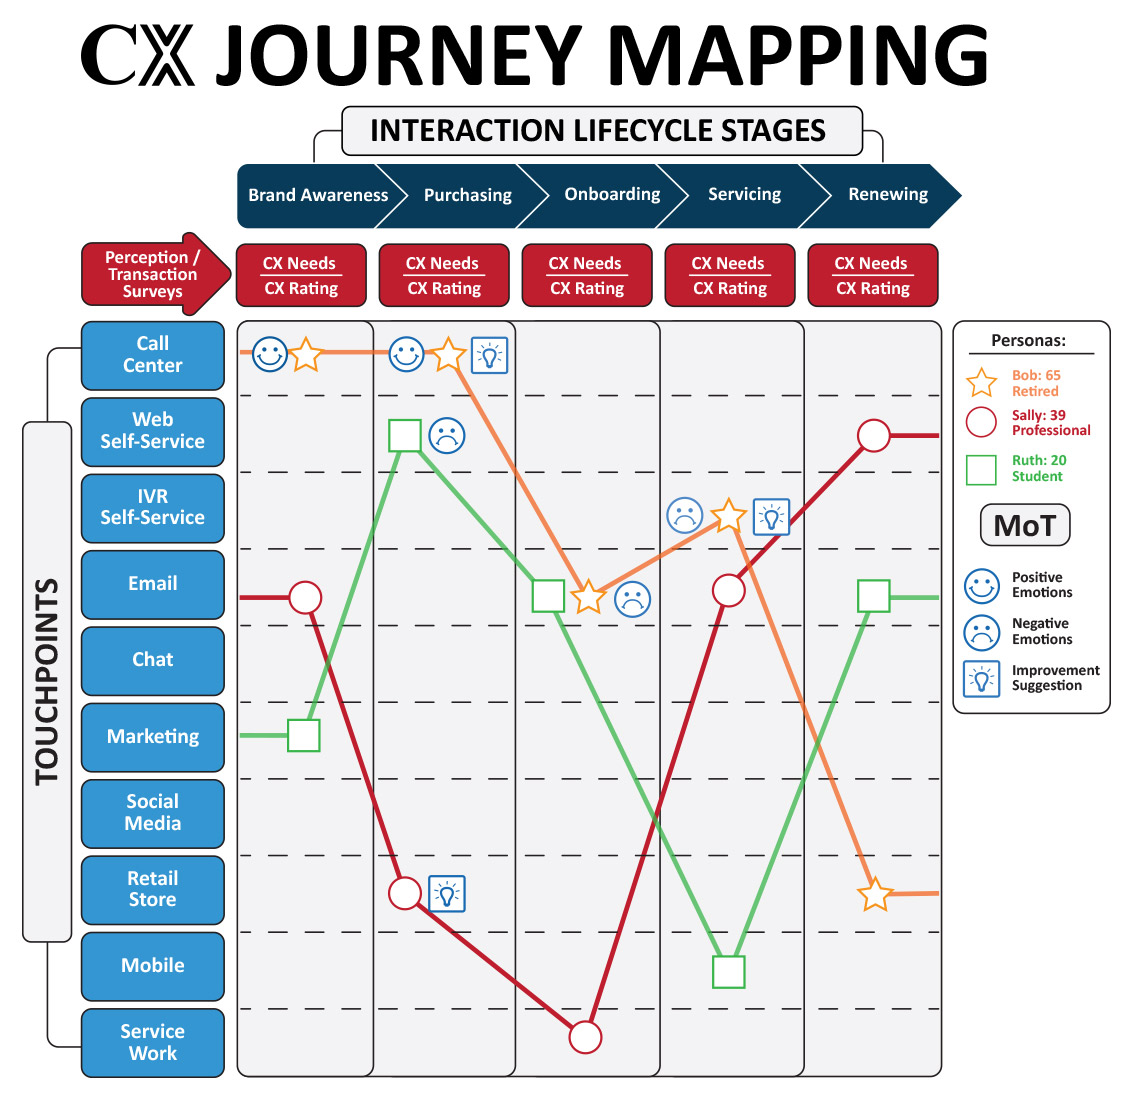 CX Journey Mapping